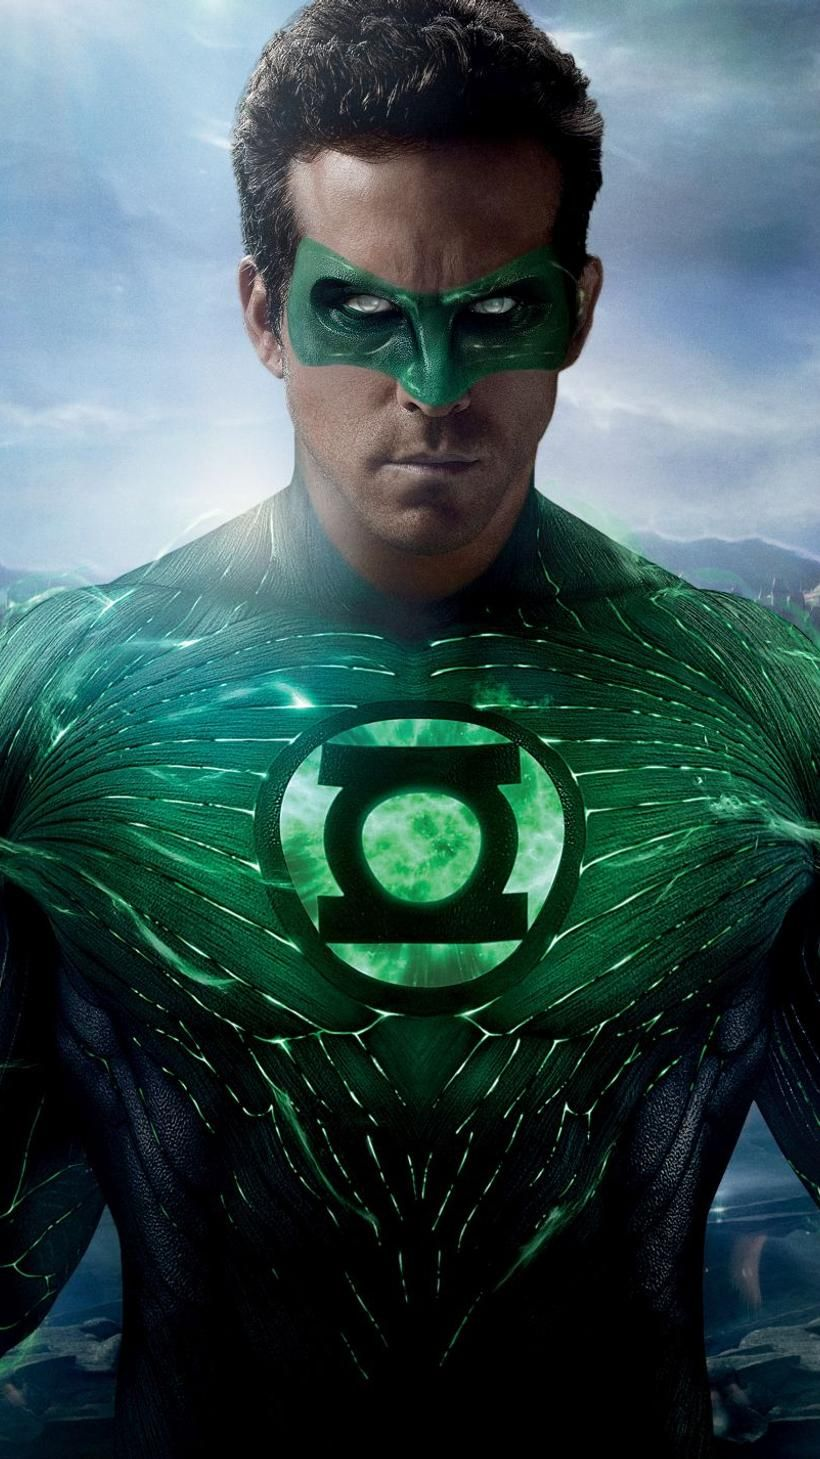 Green Lantern disappointing movies